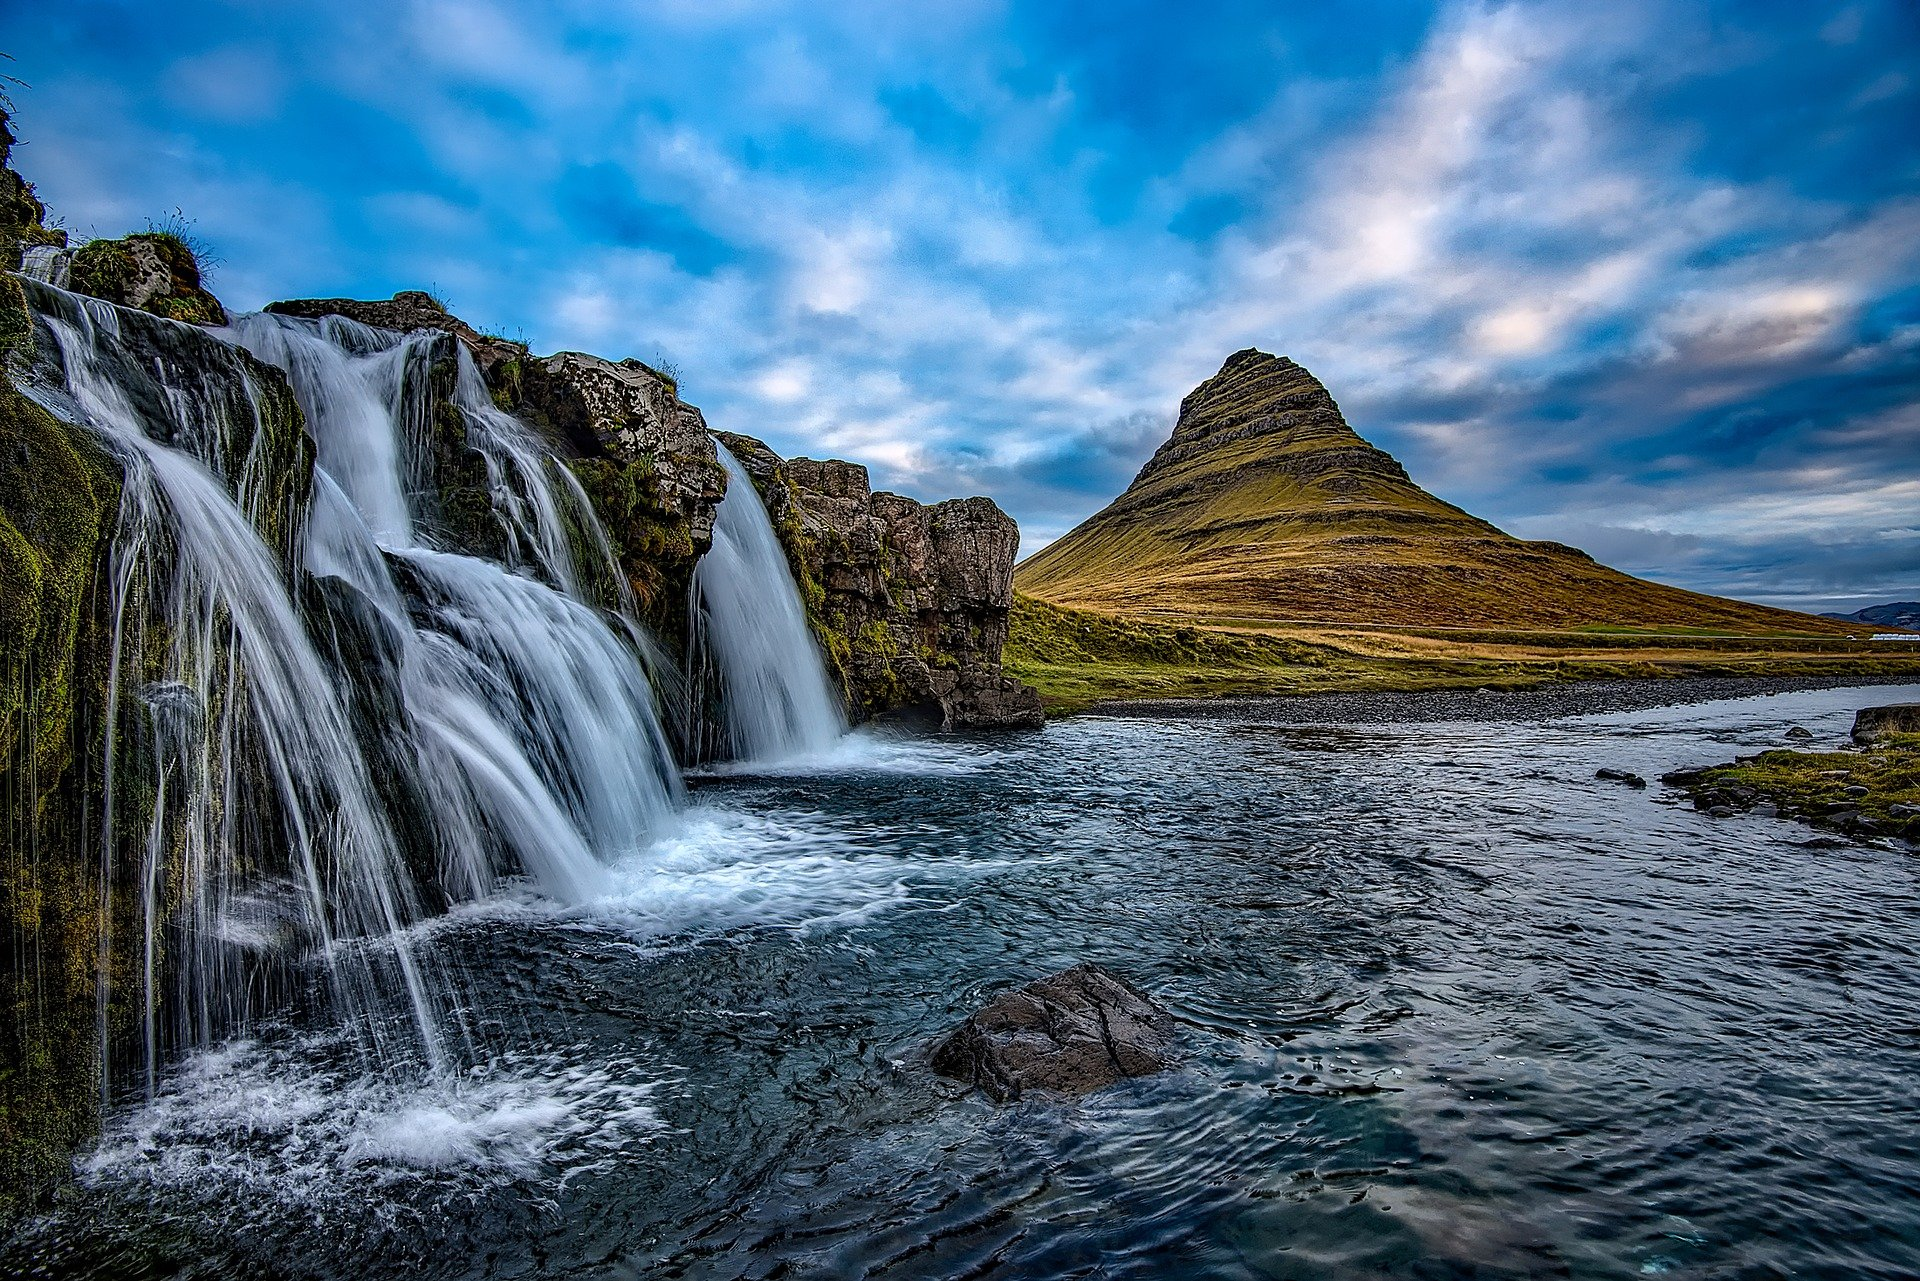 Water FALLS iceland 1768744 1920